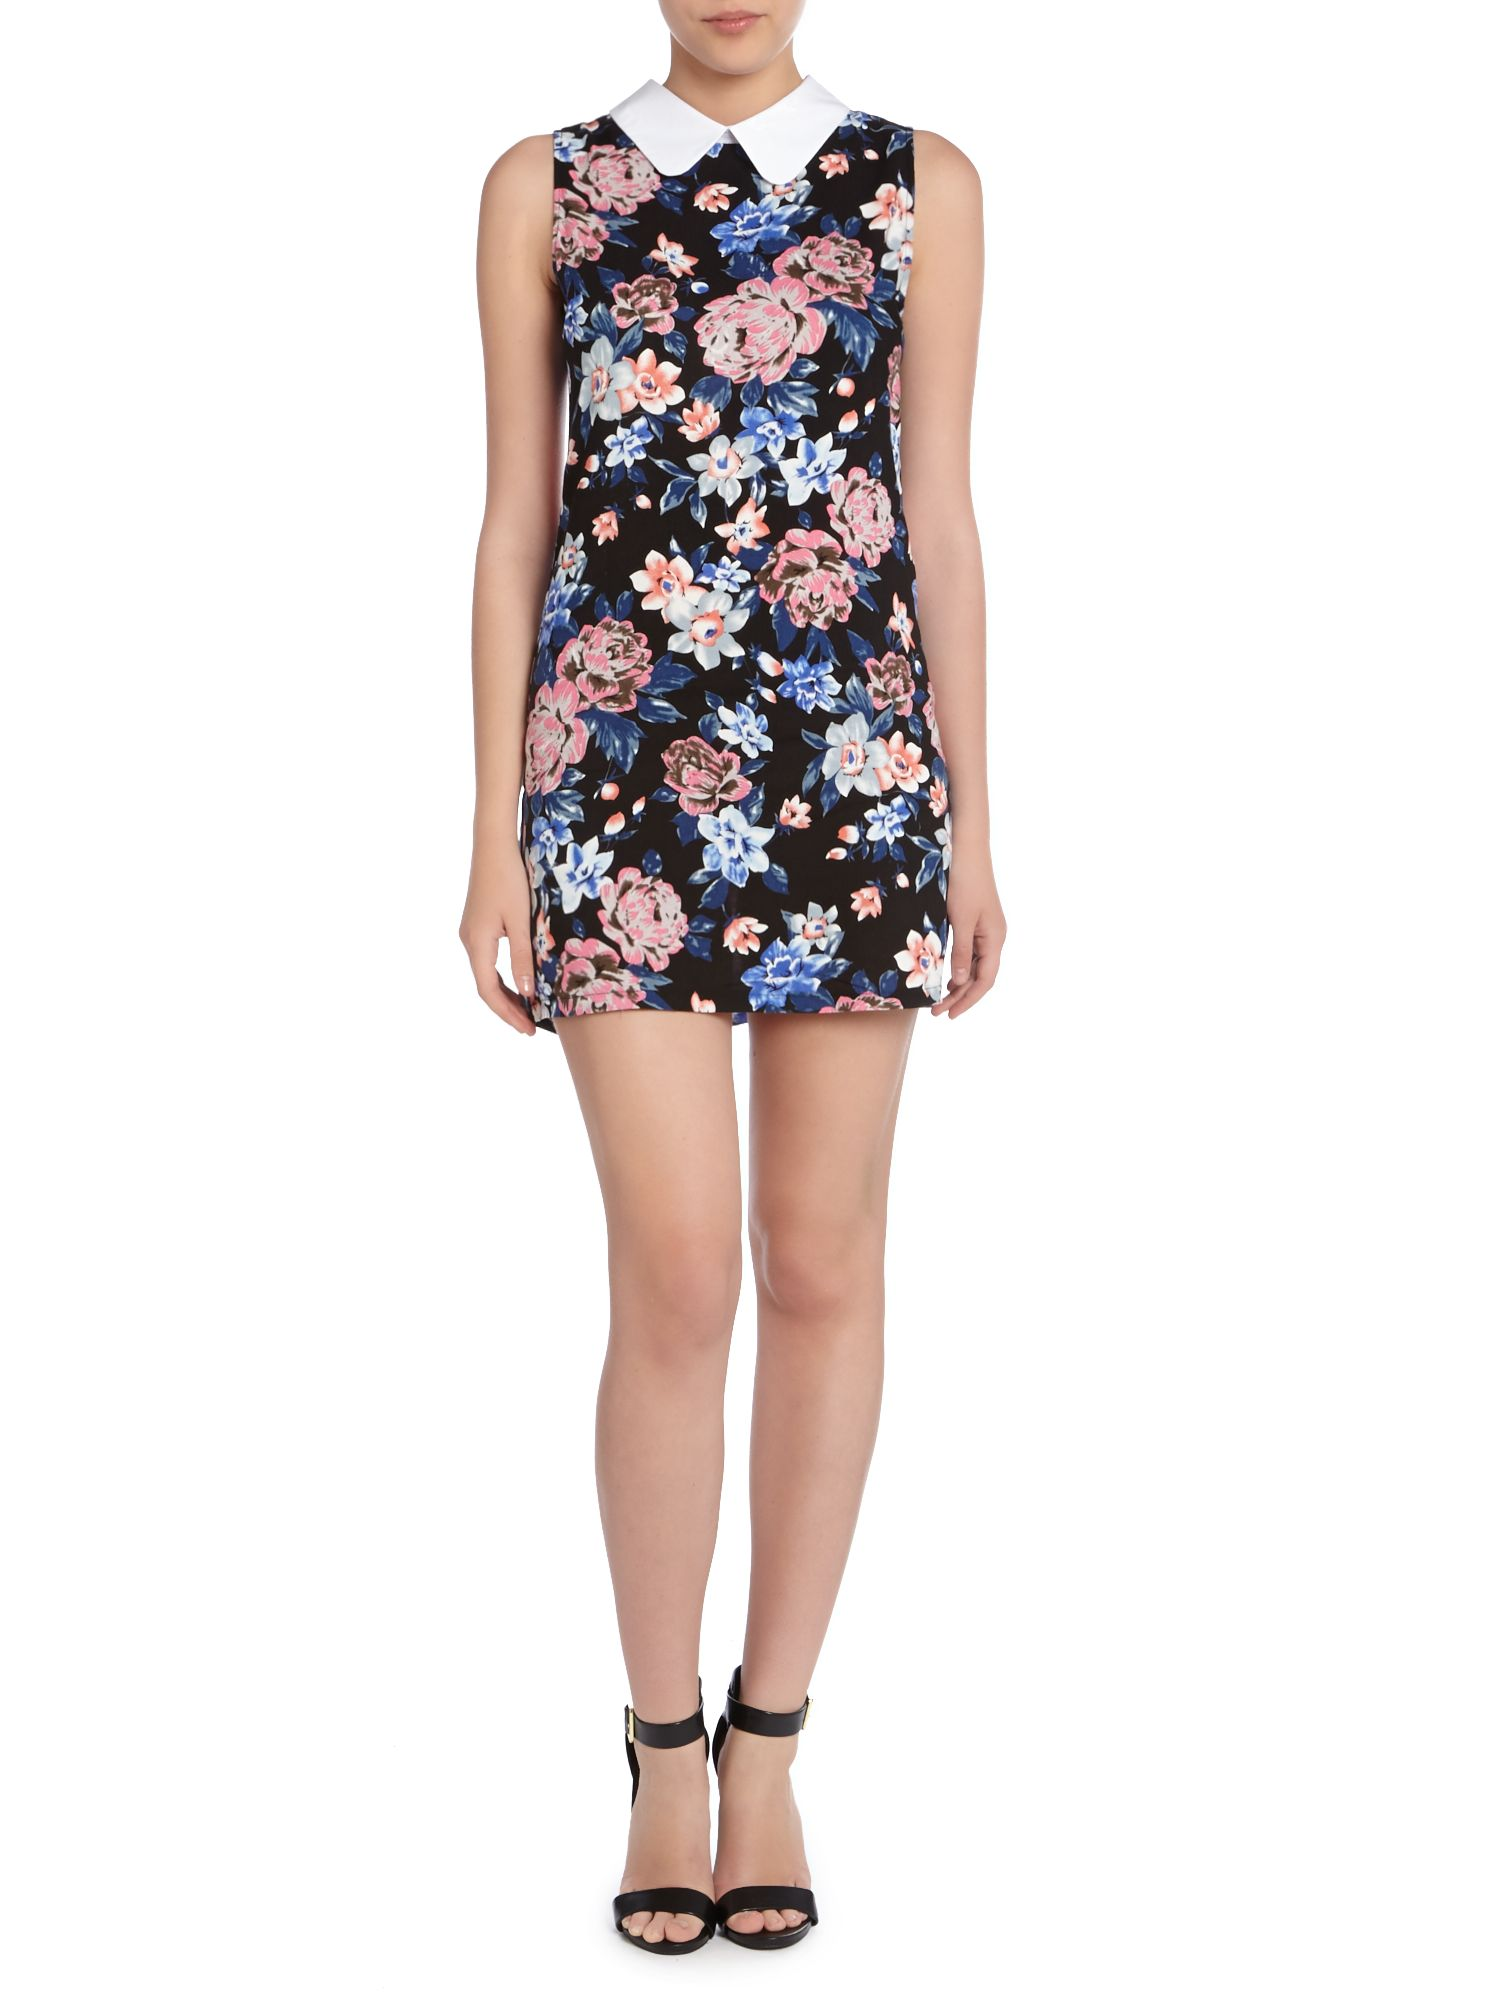 Floral printed dress with peter pan collar